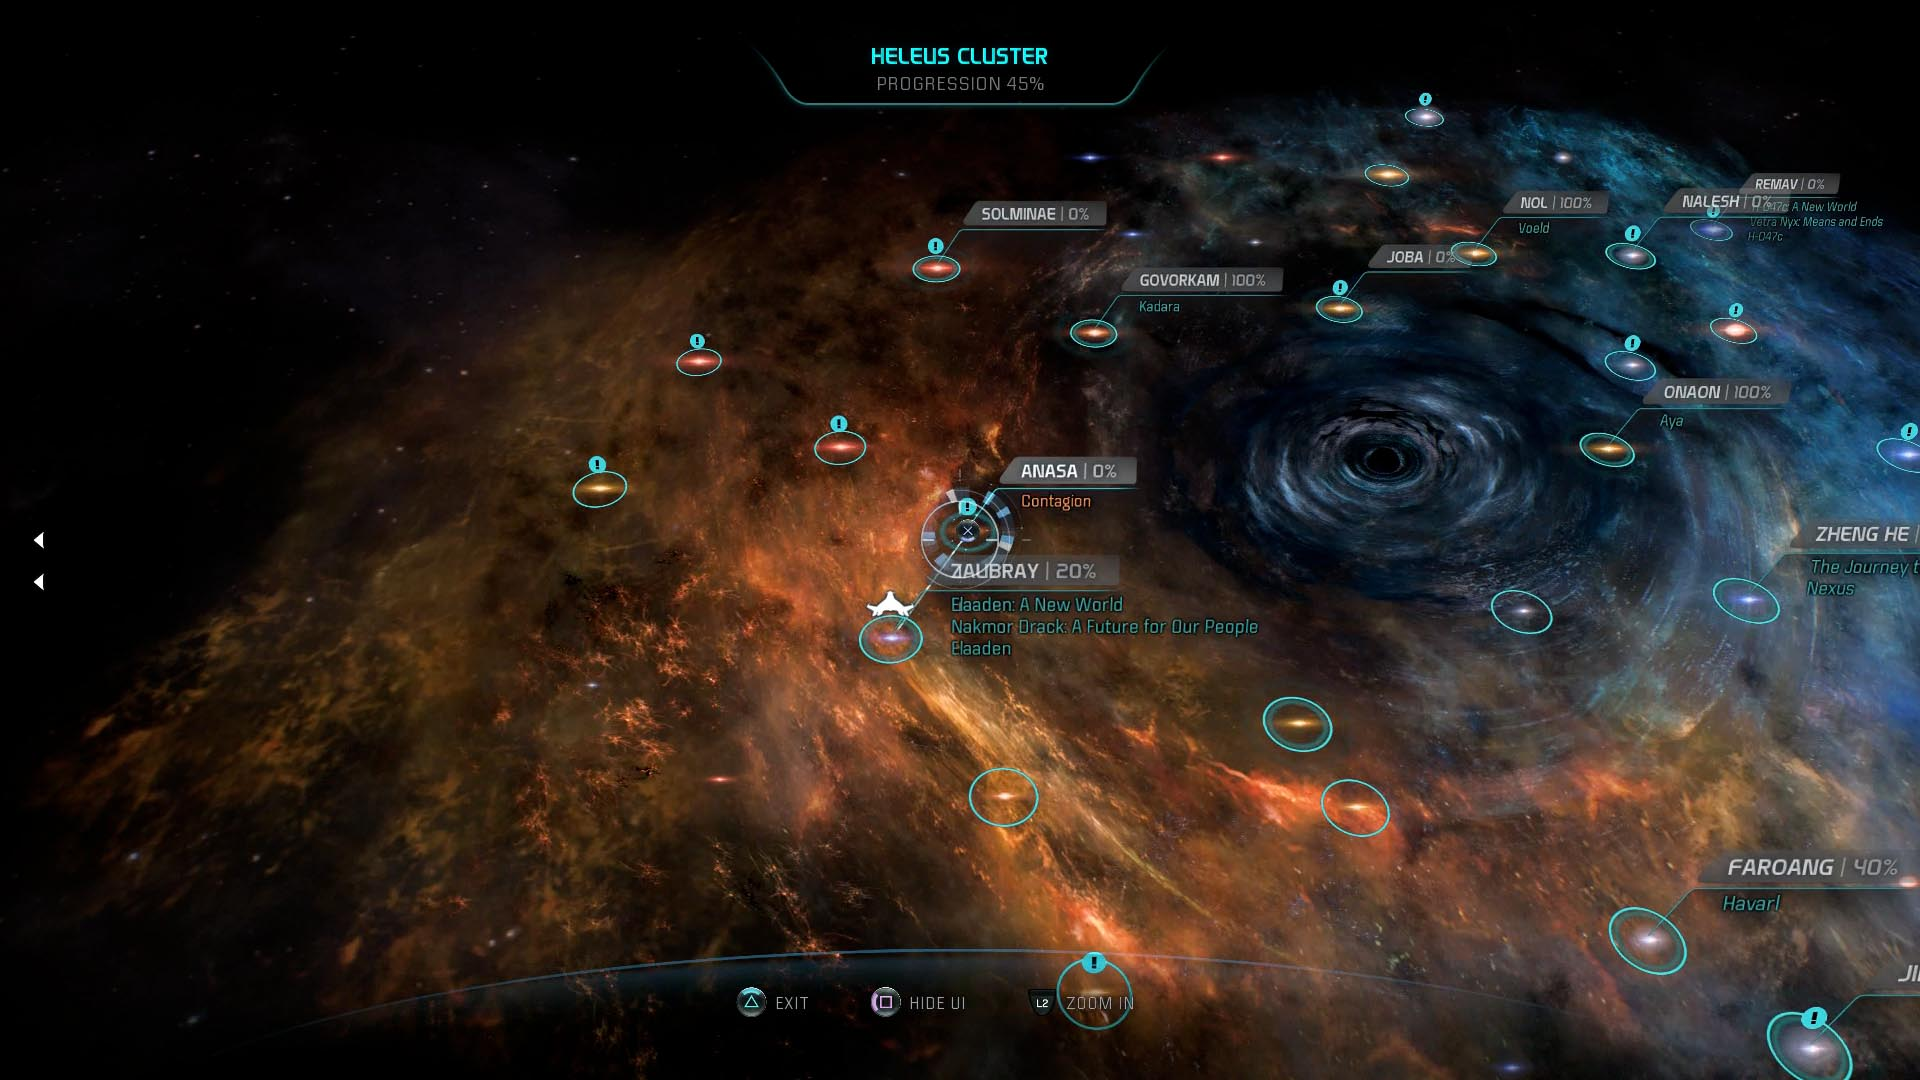 Mass Effect Andromeda Star Map.Mass Effect Andromeda Guide Contagion Heleus Mission Walkthrough